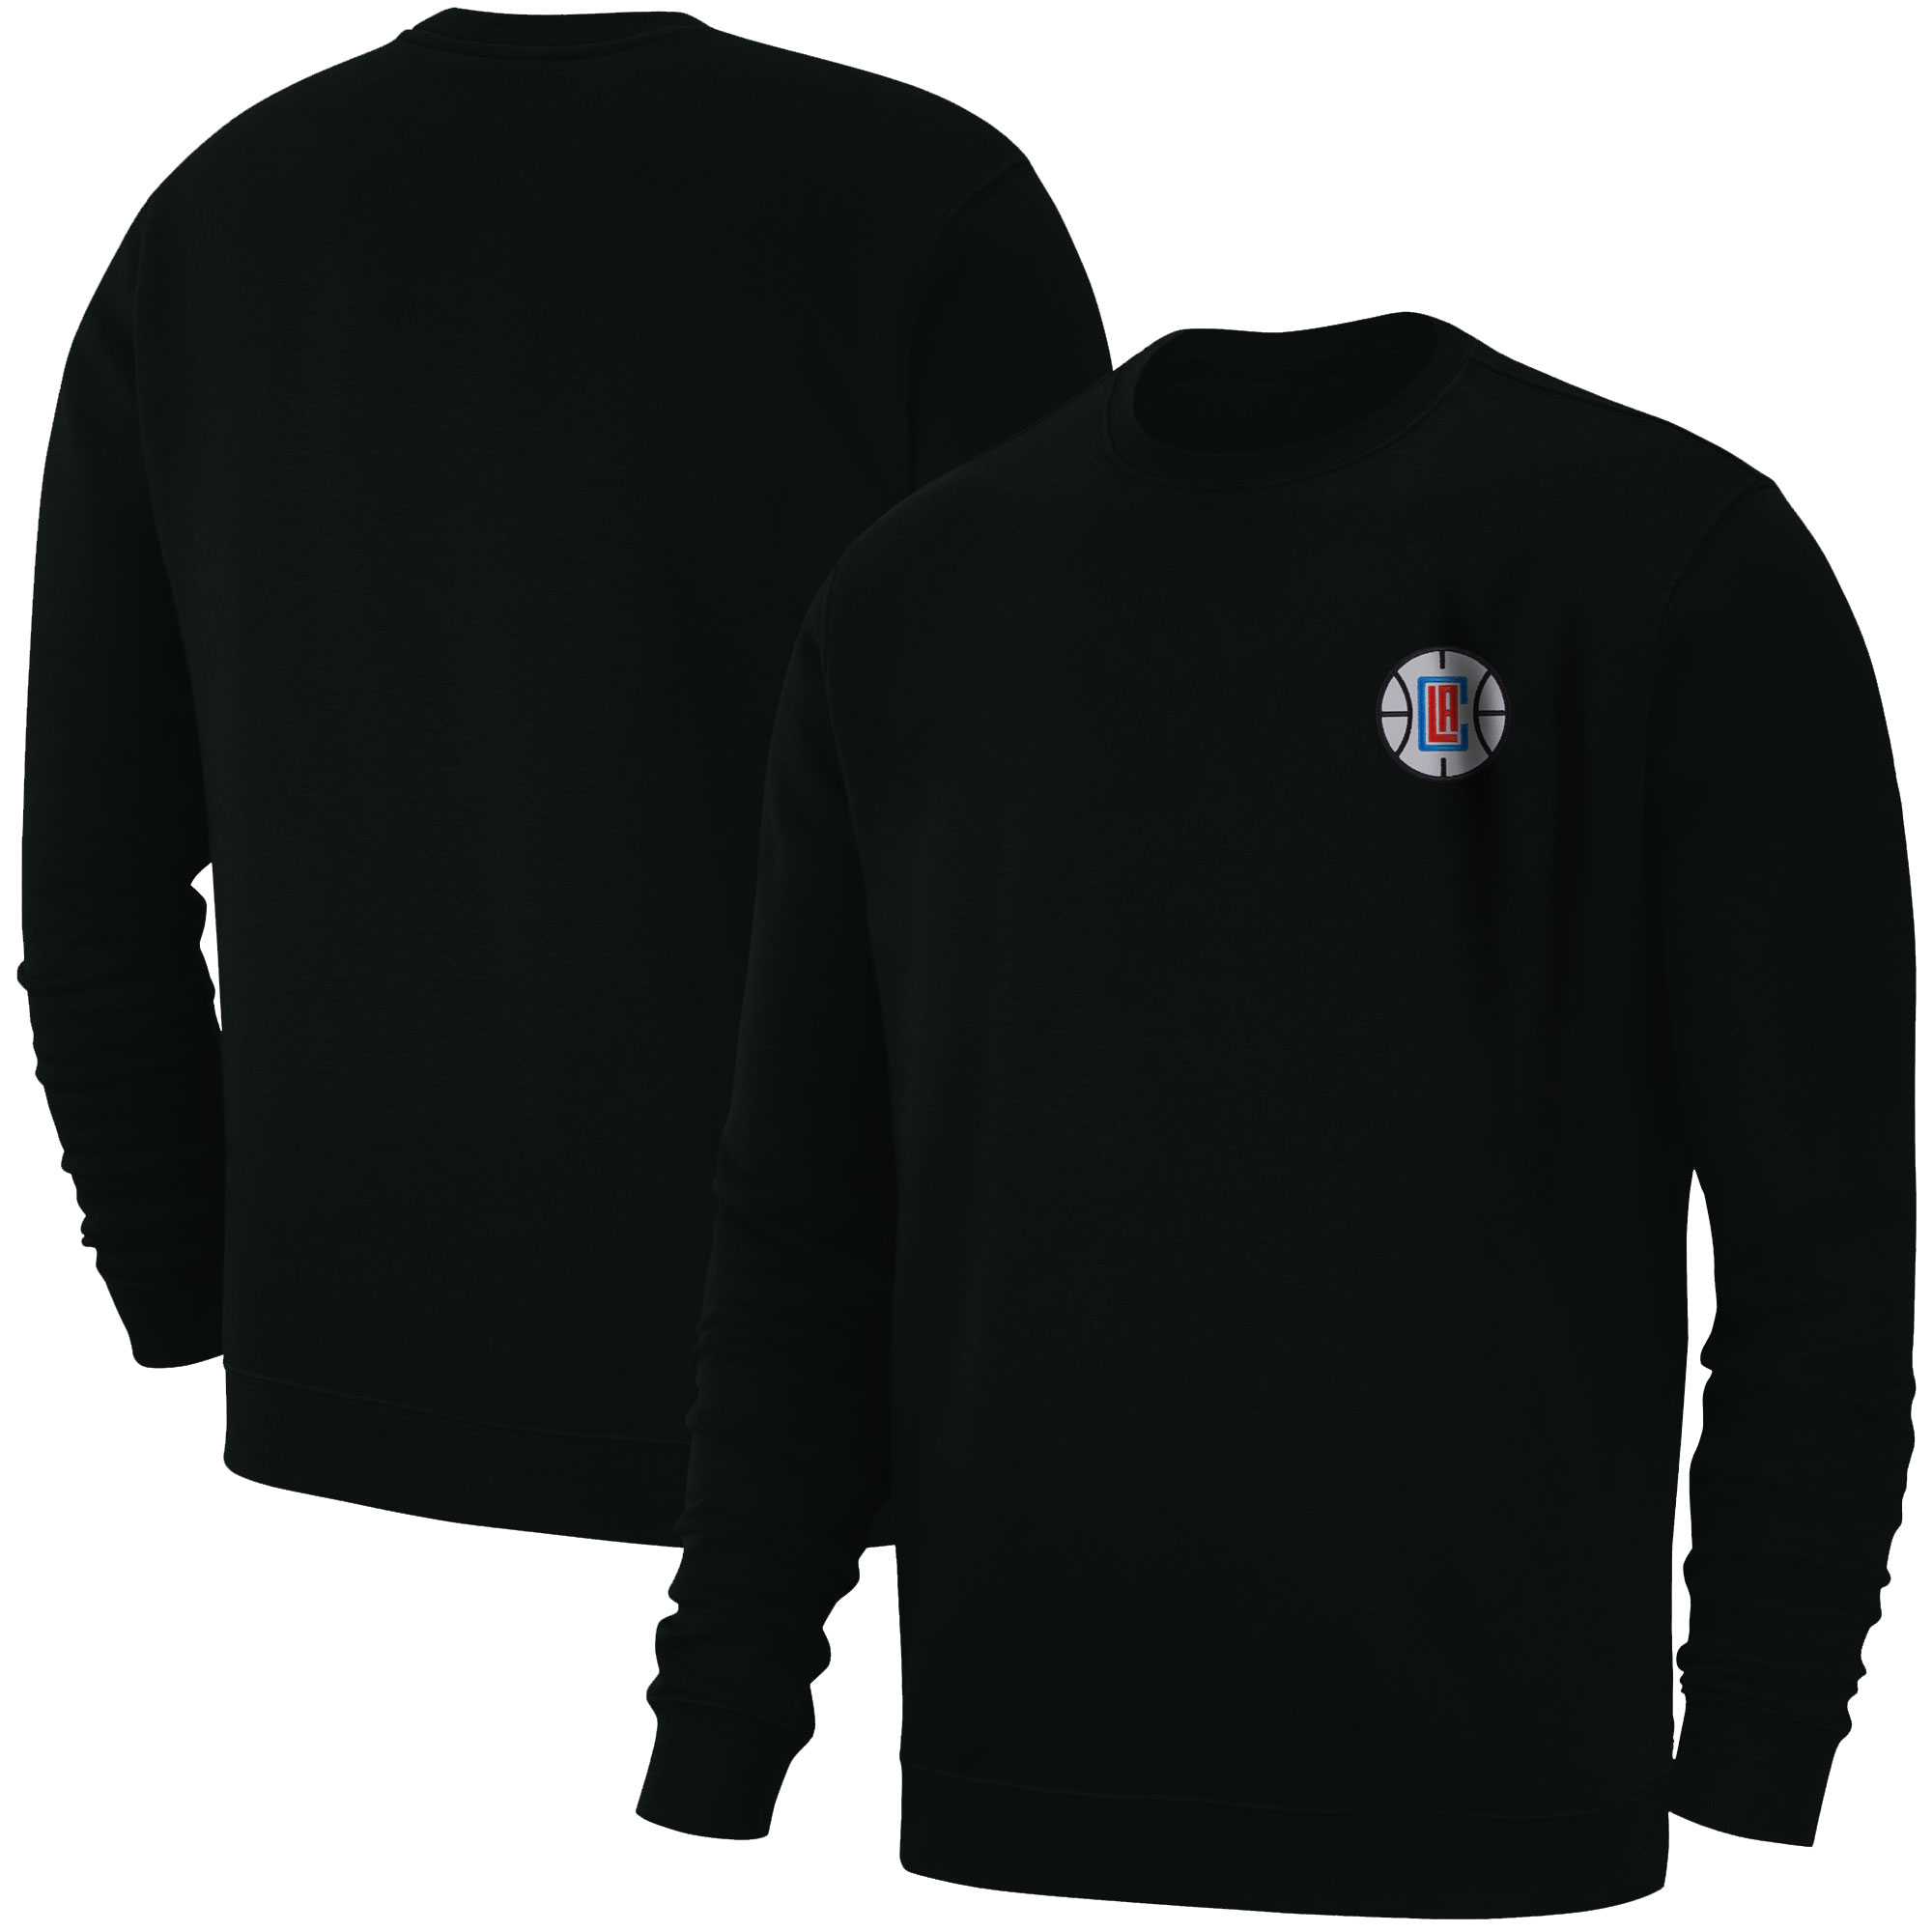 L.A. Clippers Basic (Örme)  (BSC-RED-EMBR-CLIPPERS)